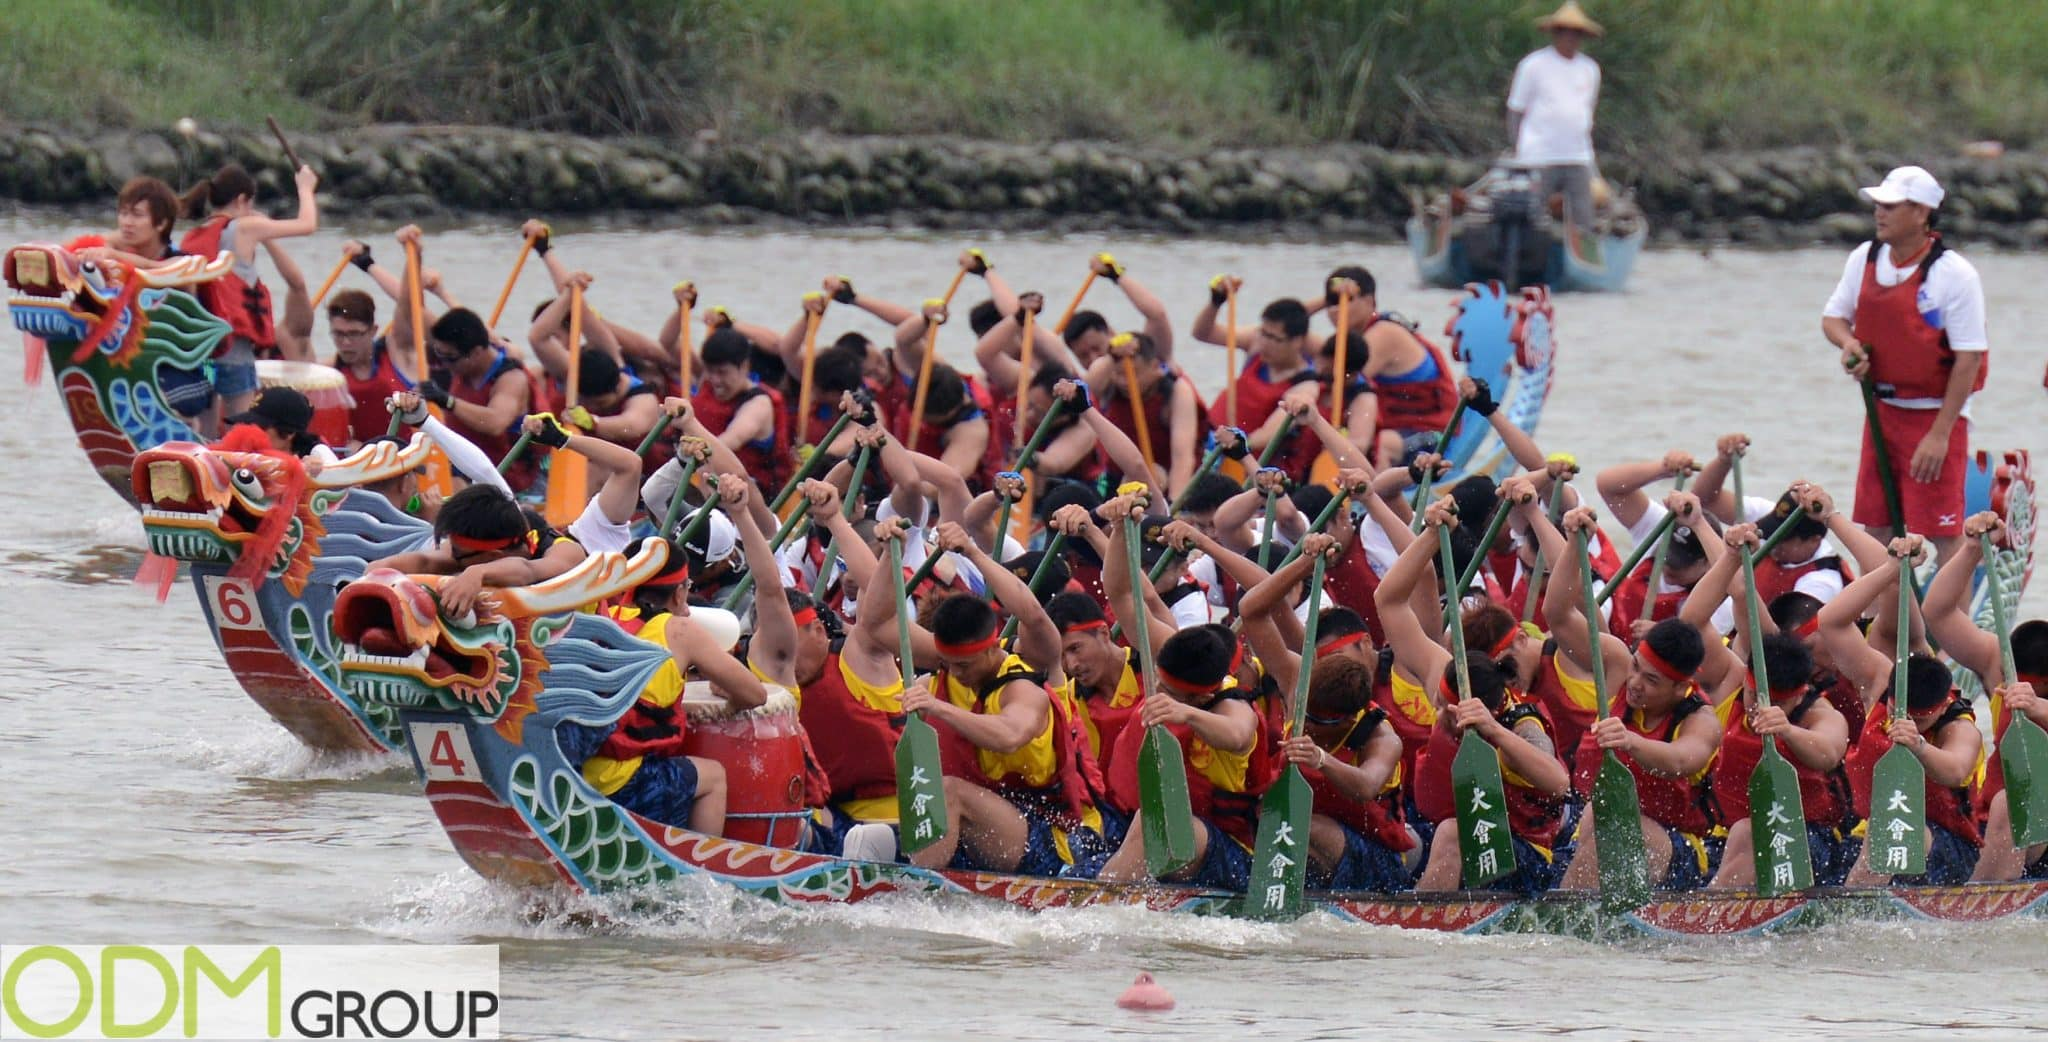 Chinese Holiday - Offices Closed for Dragon Boat Festival 2016